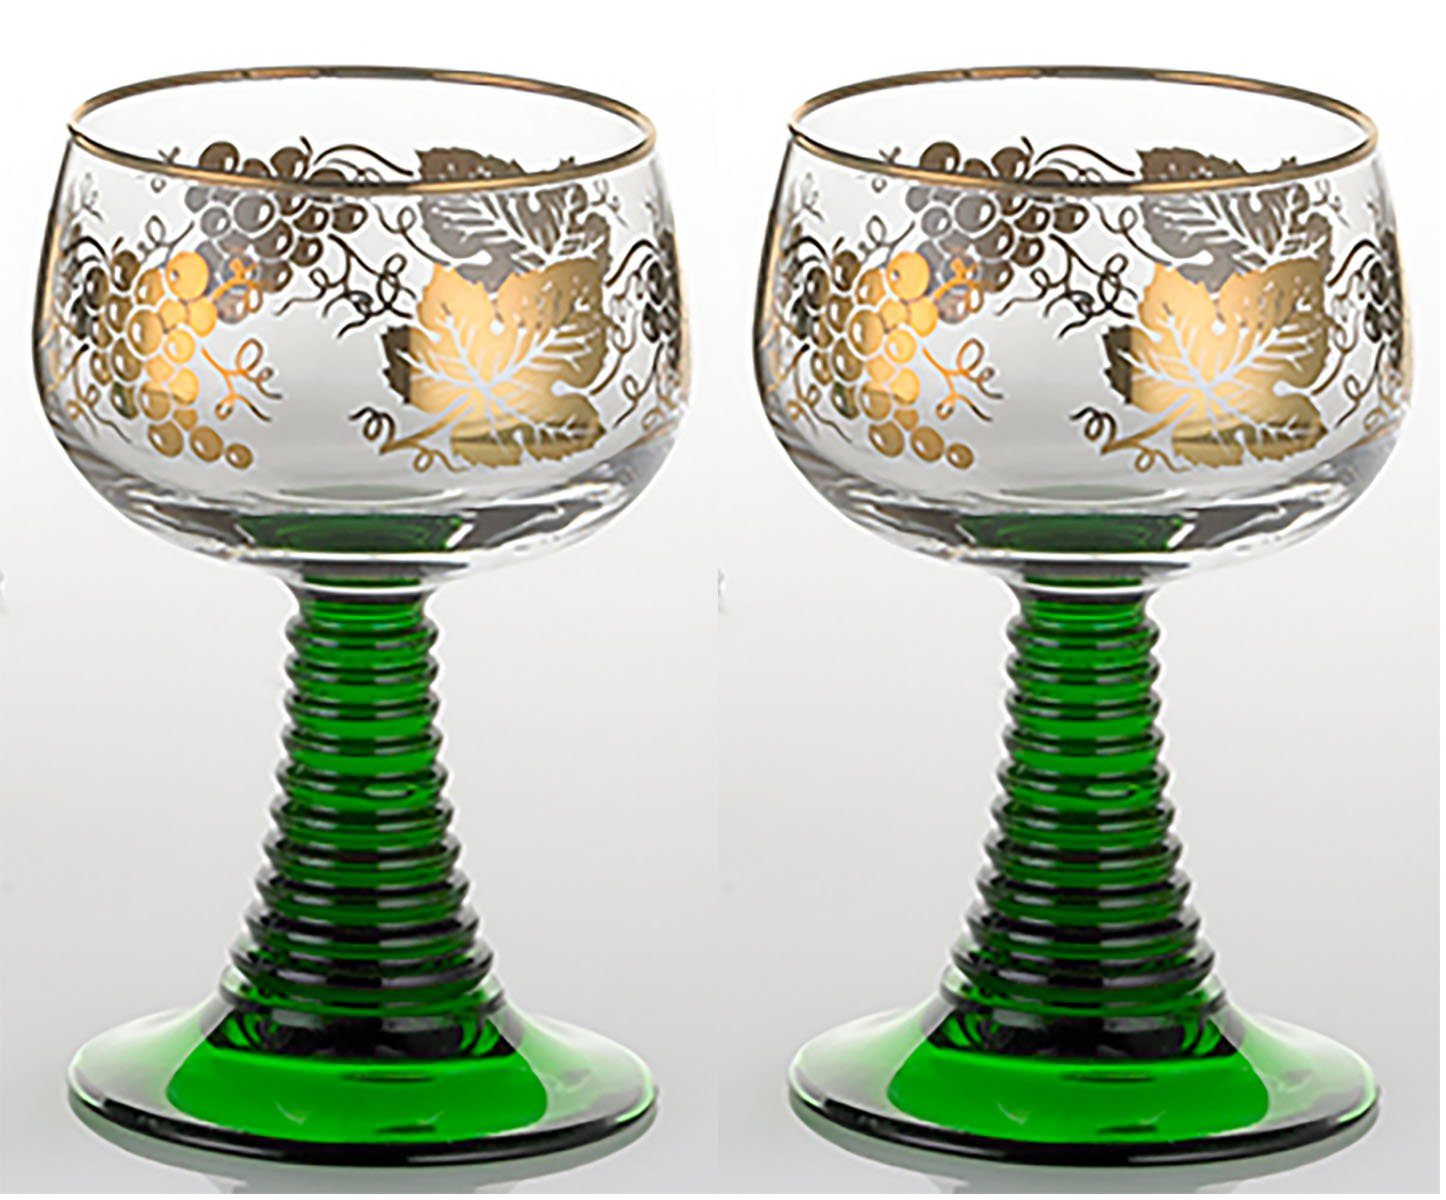 Set of 2 German Rhein Glass Roemer Vintage Goblet Wine Glass w/ Gold-Leaf Rim and Grape Pattern Vintage Wine Glass Goblet GermanGlass 5646